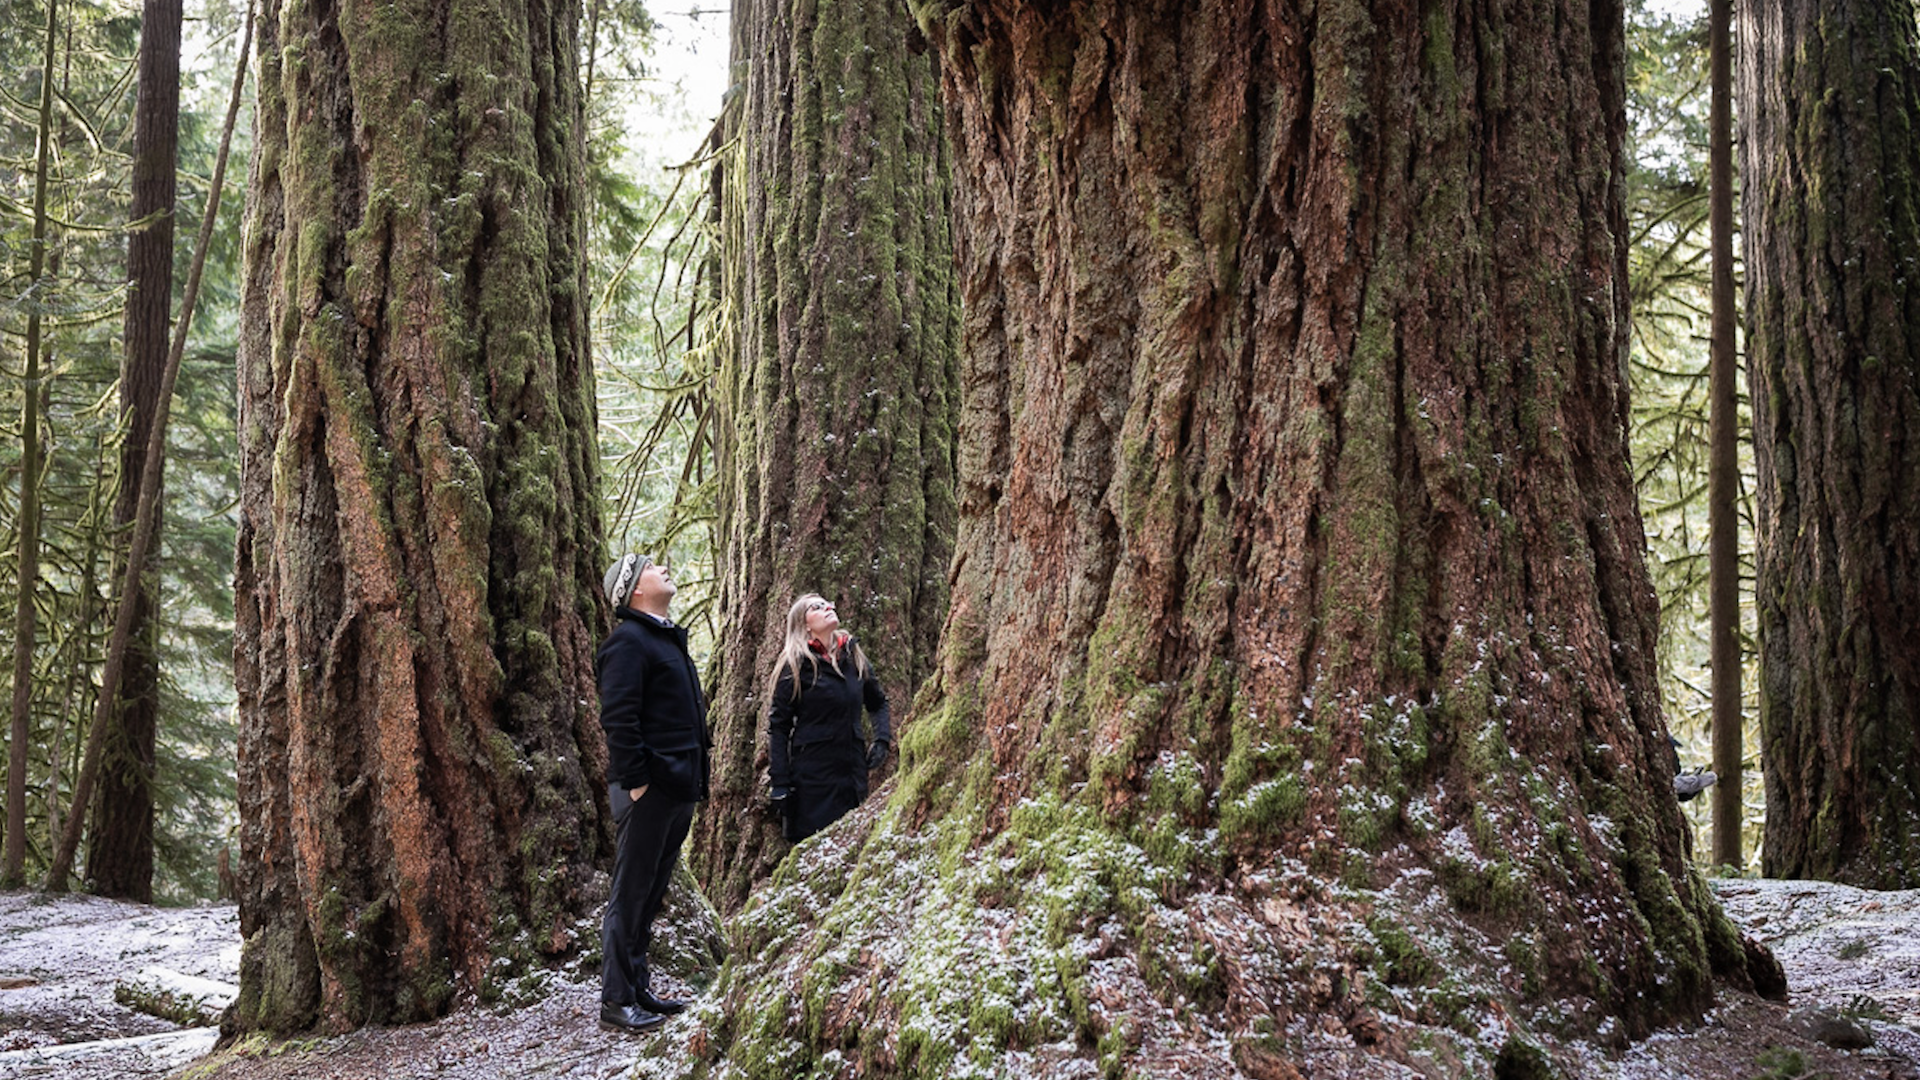 Stop managing old-growth to zero